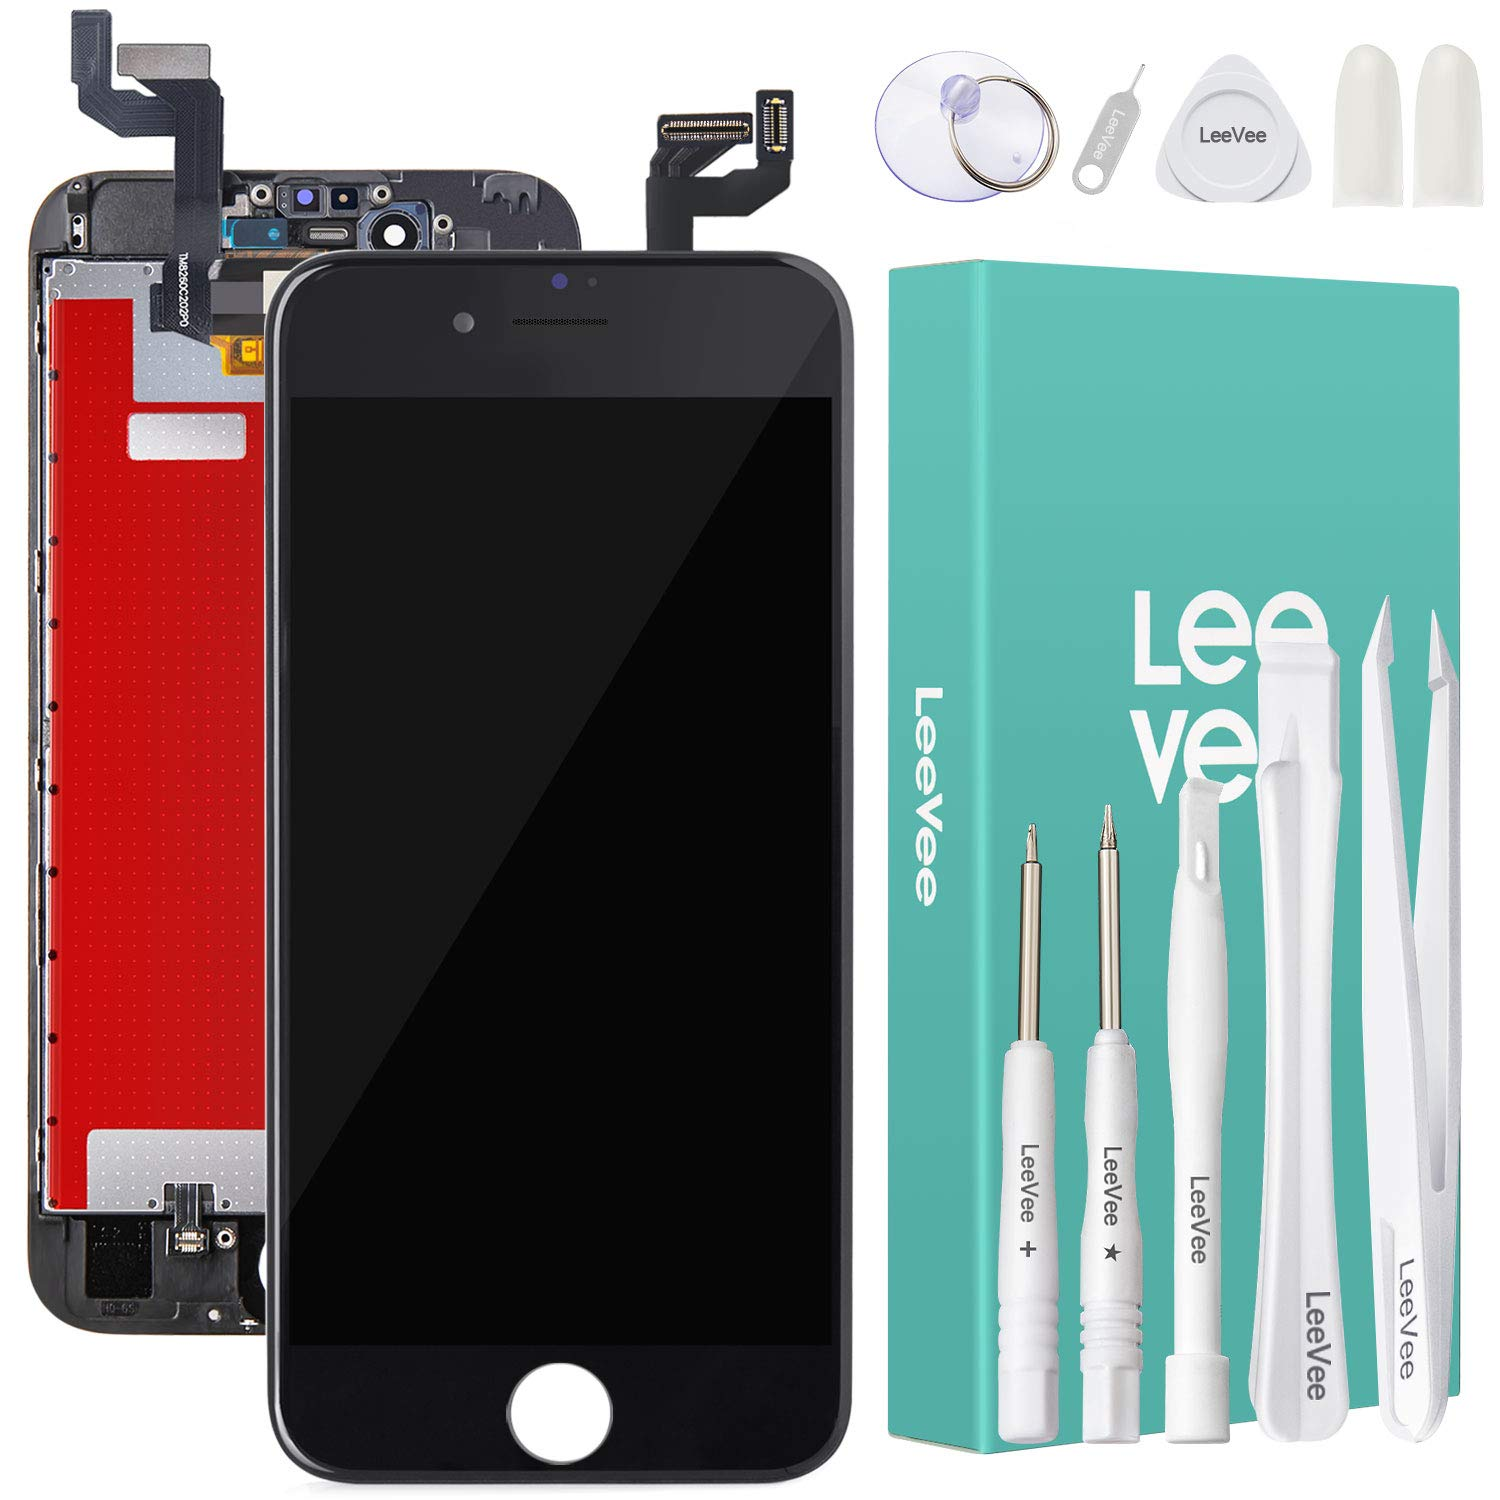 for iPhone 6s Screen Replacement,New 4.7 inch iPhone 6s LED Backlight Display Screen with 3D Touch Display Repair for iPhone 6s Digitizer Screen, Black 6S Screen Repair with Full Screen Repair Tools